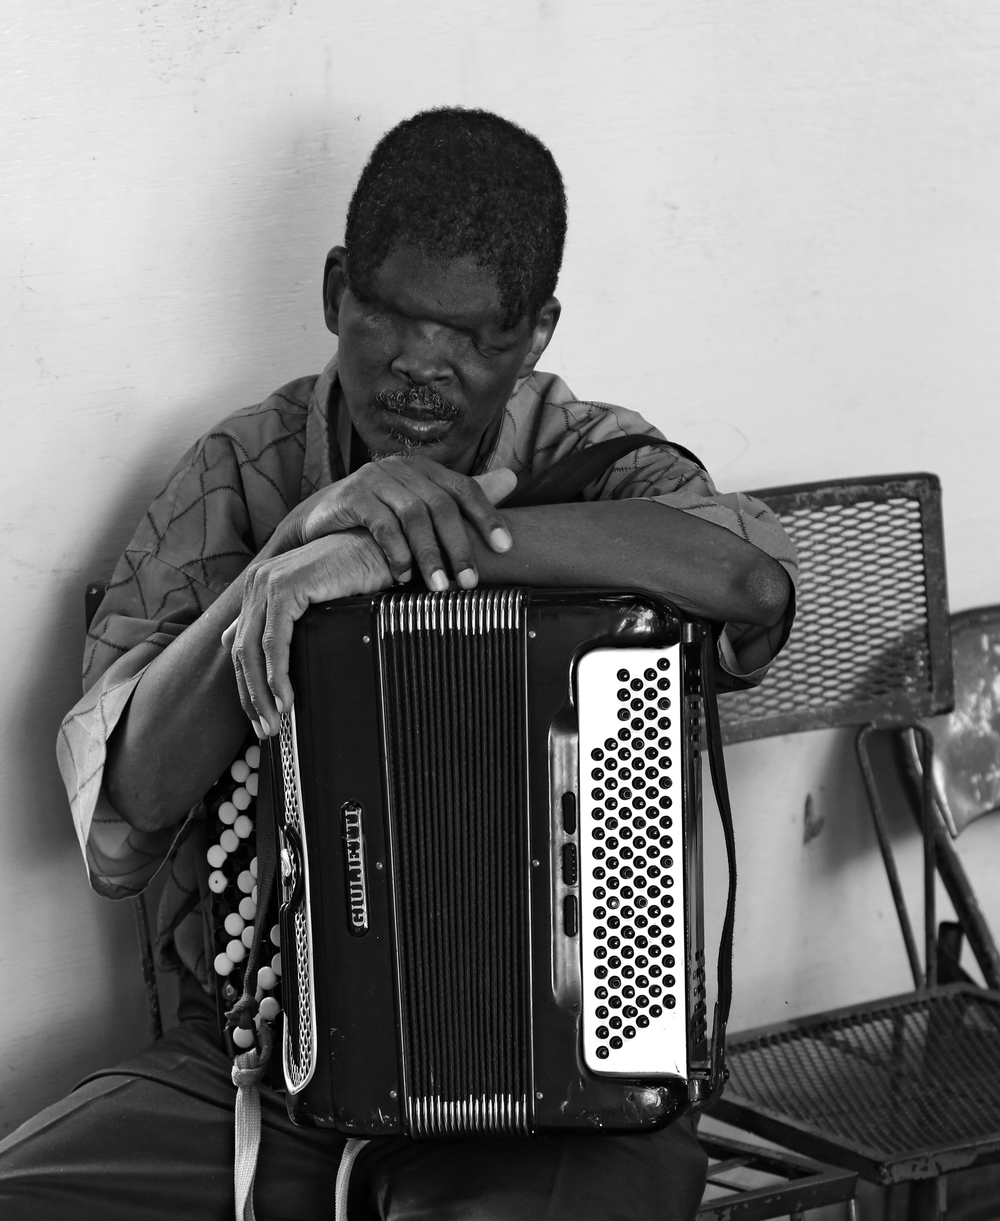 blind accordian portrait.jpg